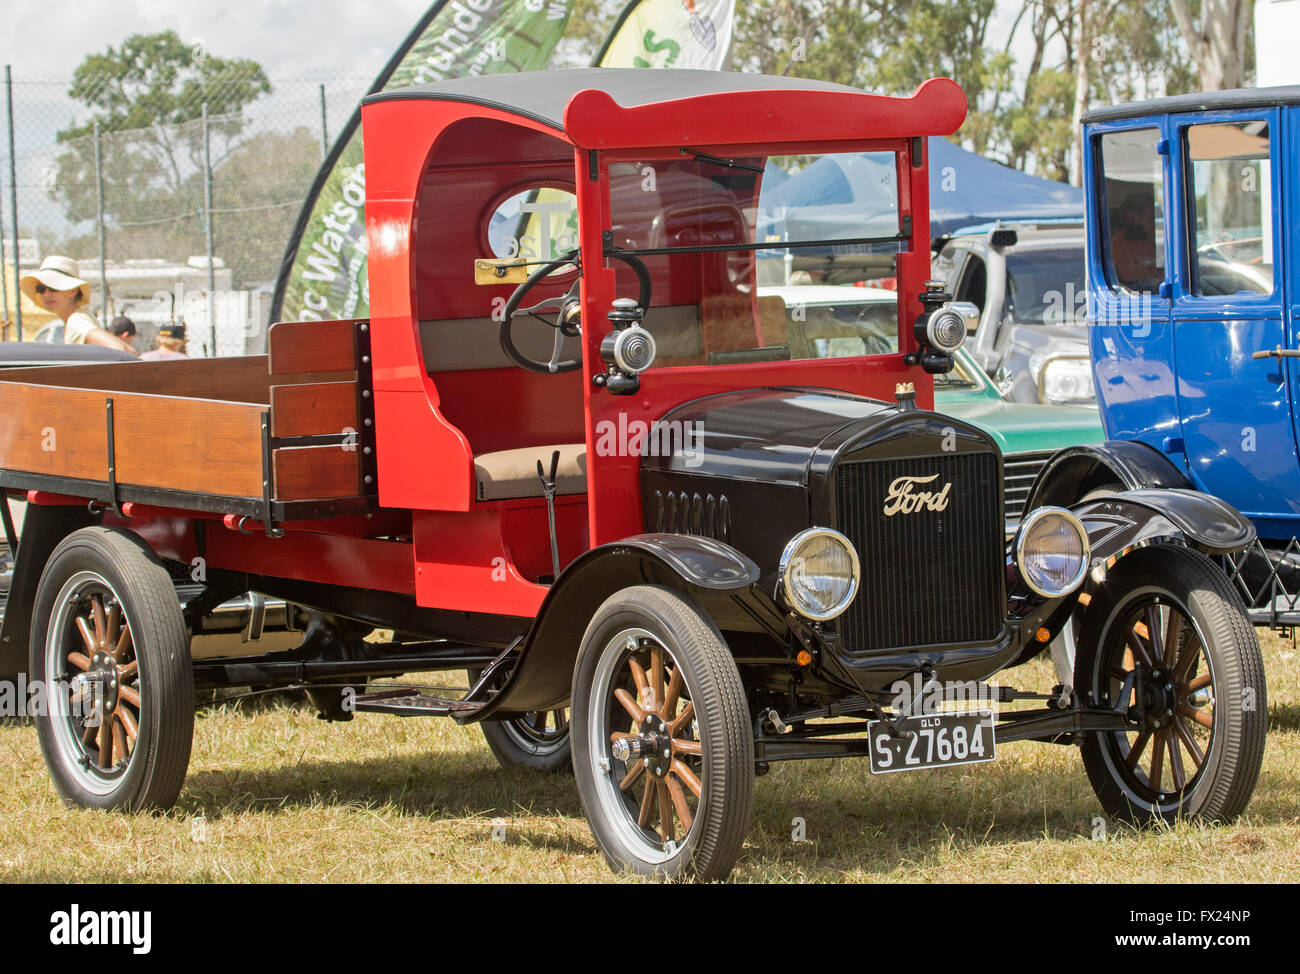 Perfectly restored vintage Ford truck / delivery vehicle with gleaming red doorless cab and wooden tray Stock Photo